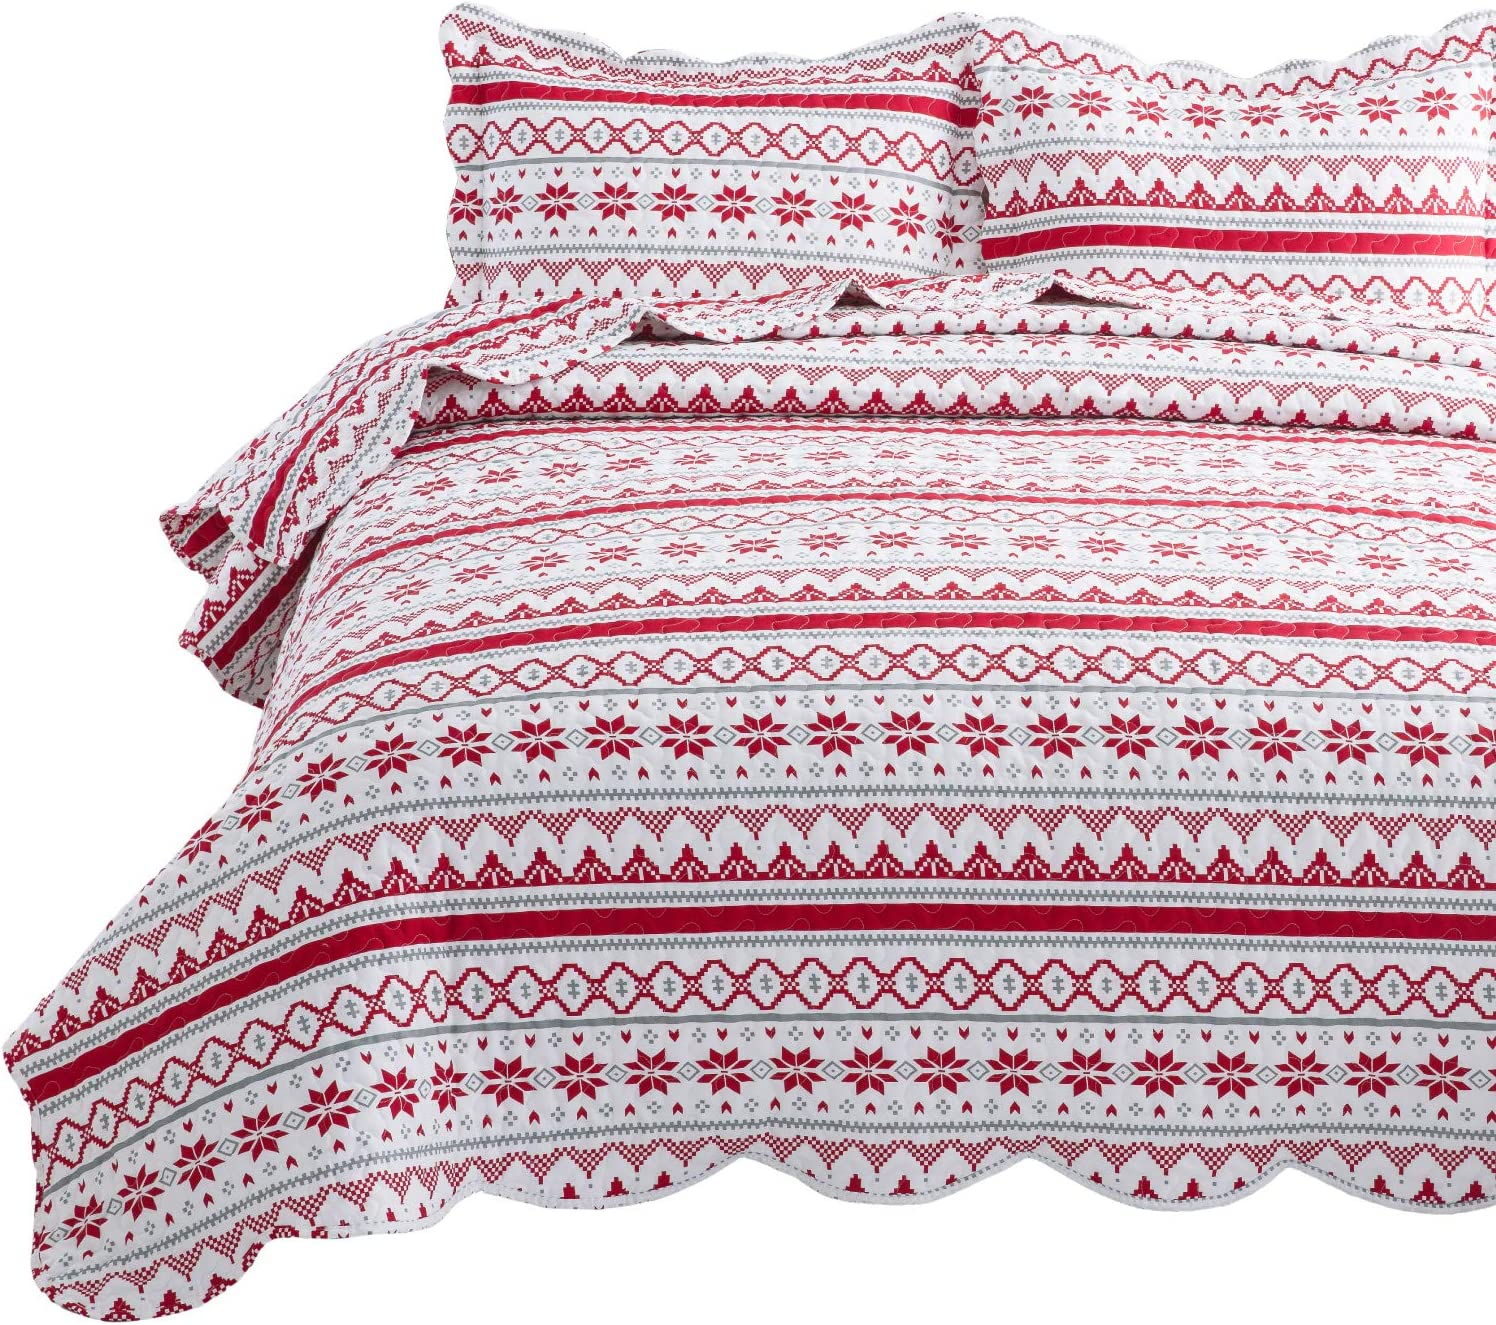 Bedsure Christmas Quilt Set Full/Queen Size (90x96 inches) - Festive Printed Pattern - Soft Microfiber Lightweight Coverlet Bedspread for All Season - 3-Piece Bedding (1 Quilt + 2 Pillow Shams)